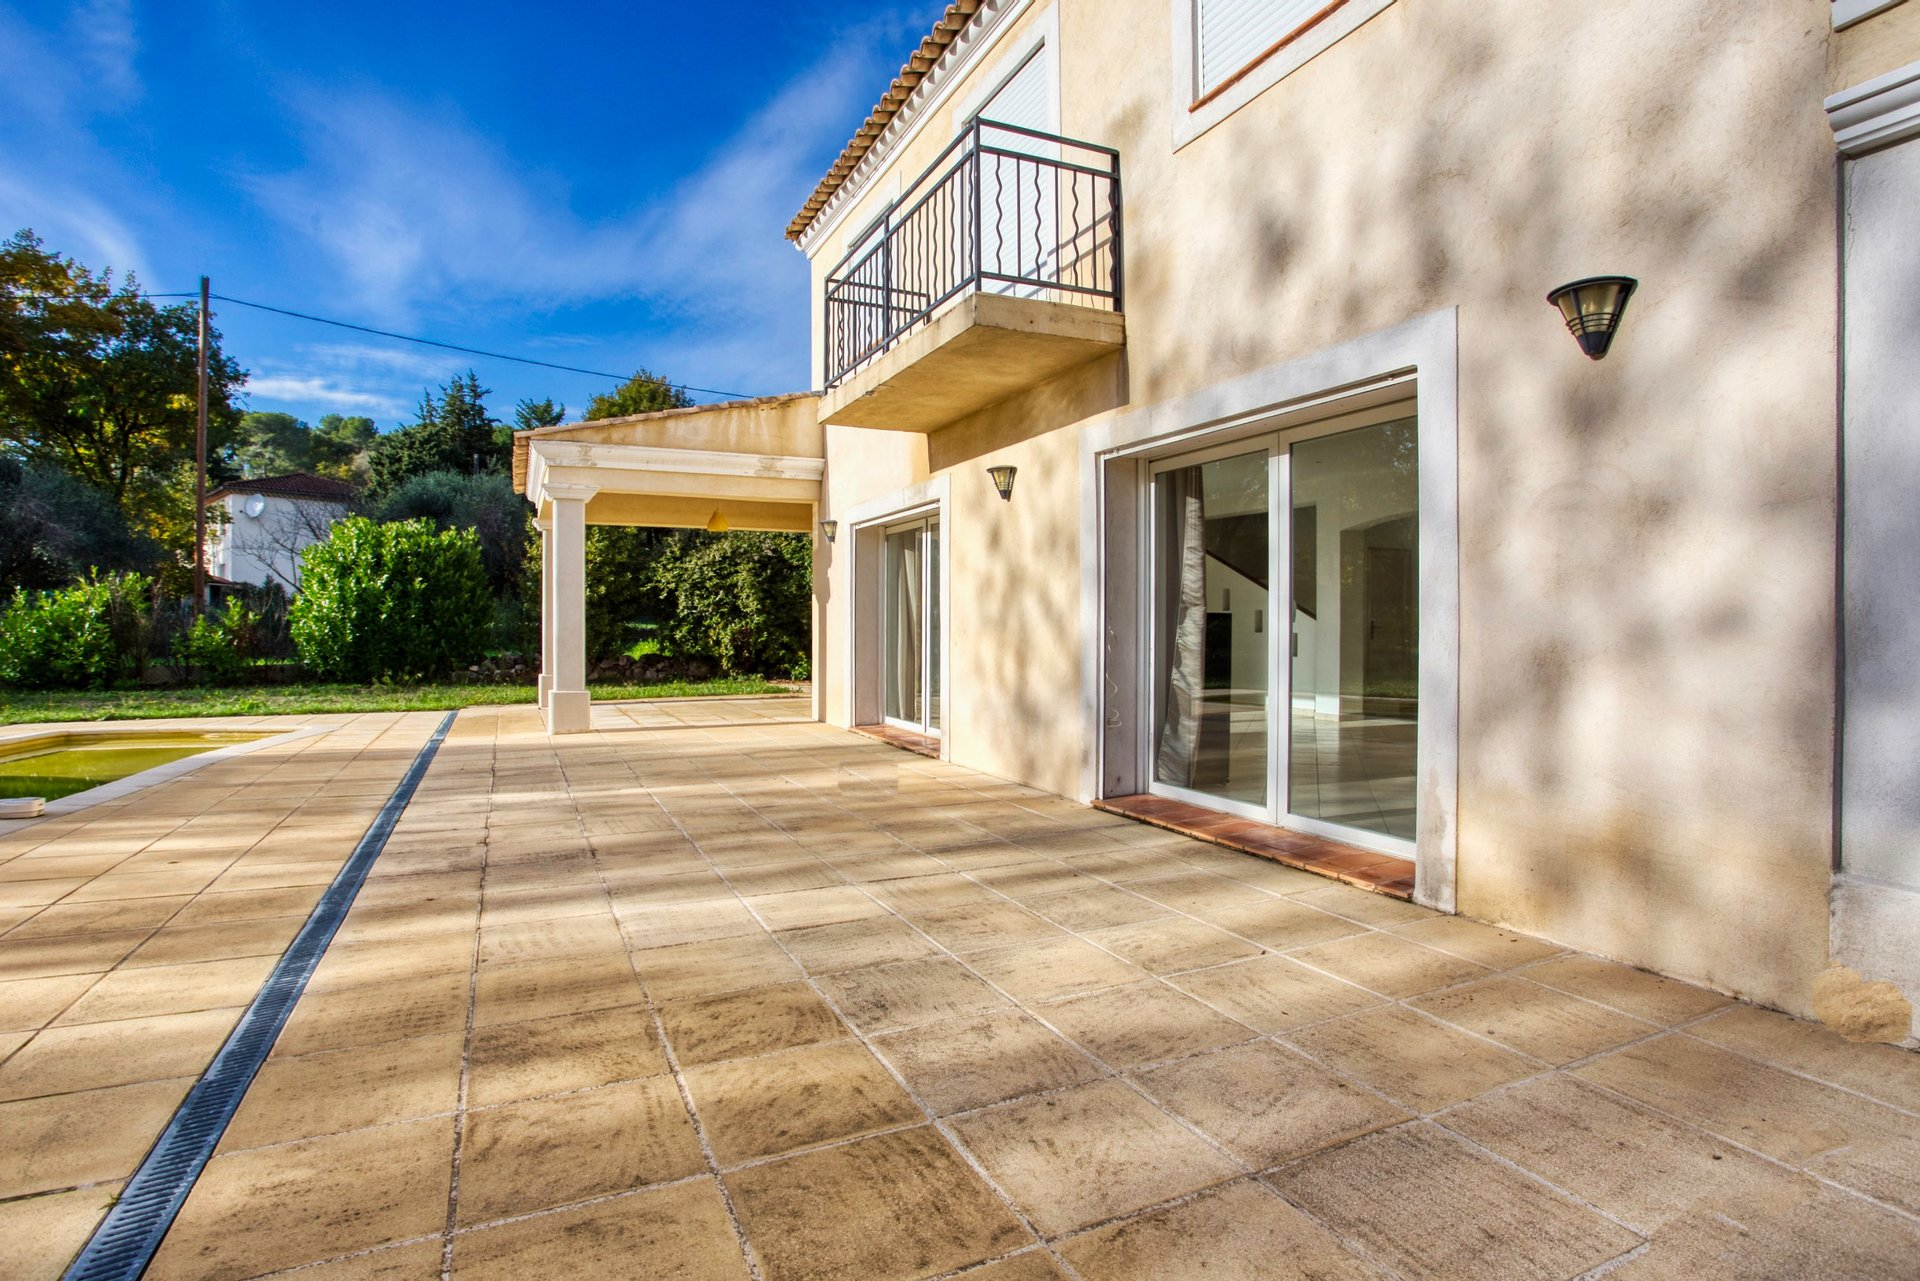 Villa 6P of 170 m² with swimming pool and flat garden